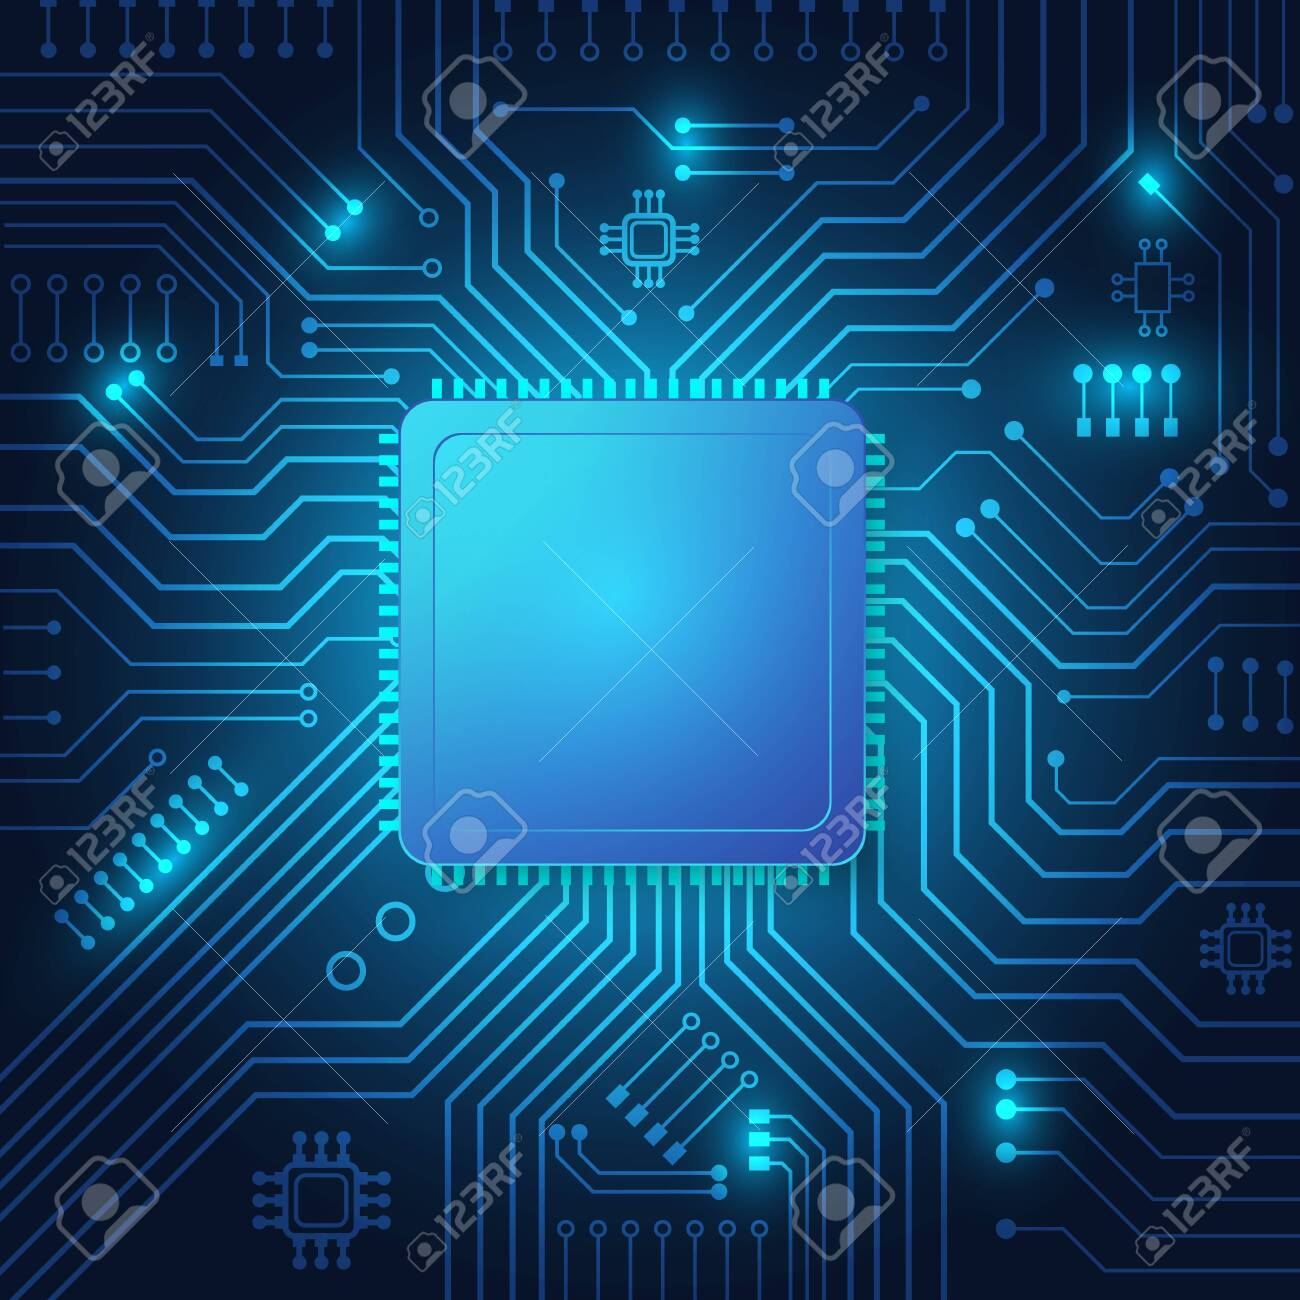 Circuit board technology background with hi-tech digital data connection system and computer electronic desing - 139204451